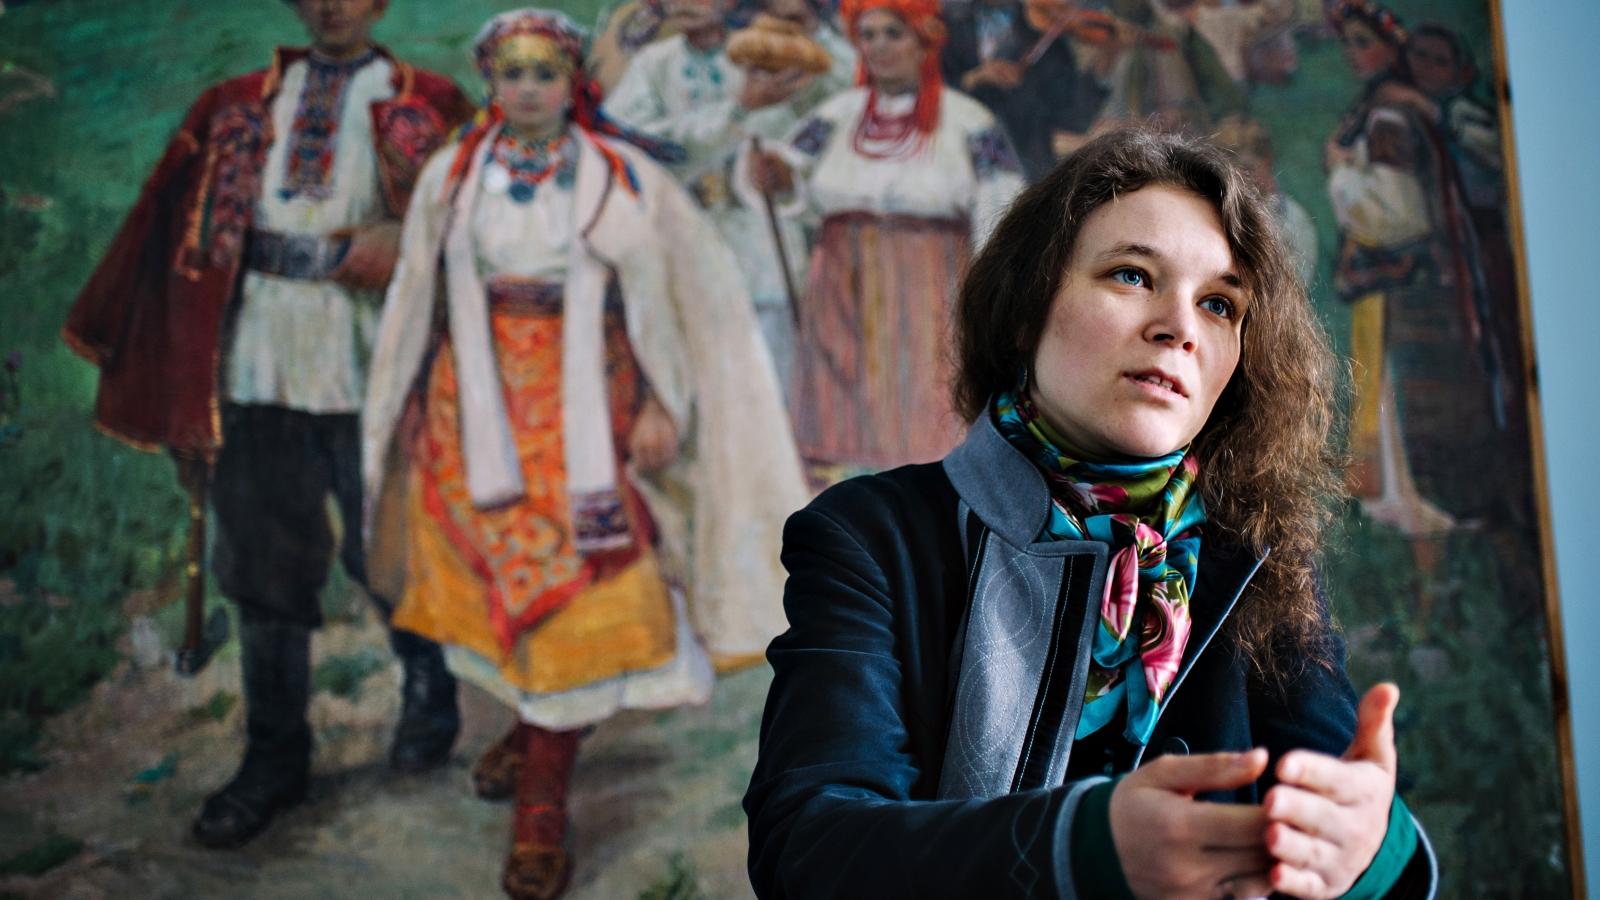 Myroslava Vertyuk, coordinator of the 'Polyphony' project in Ukraine